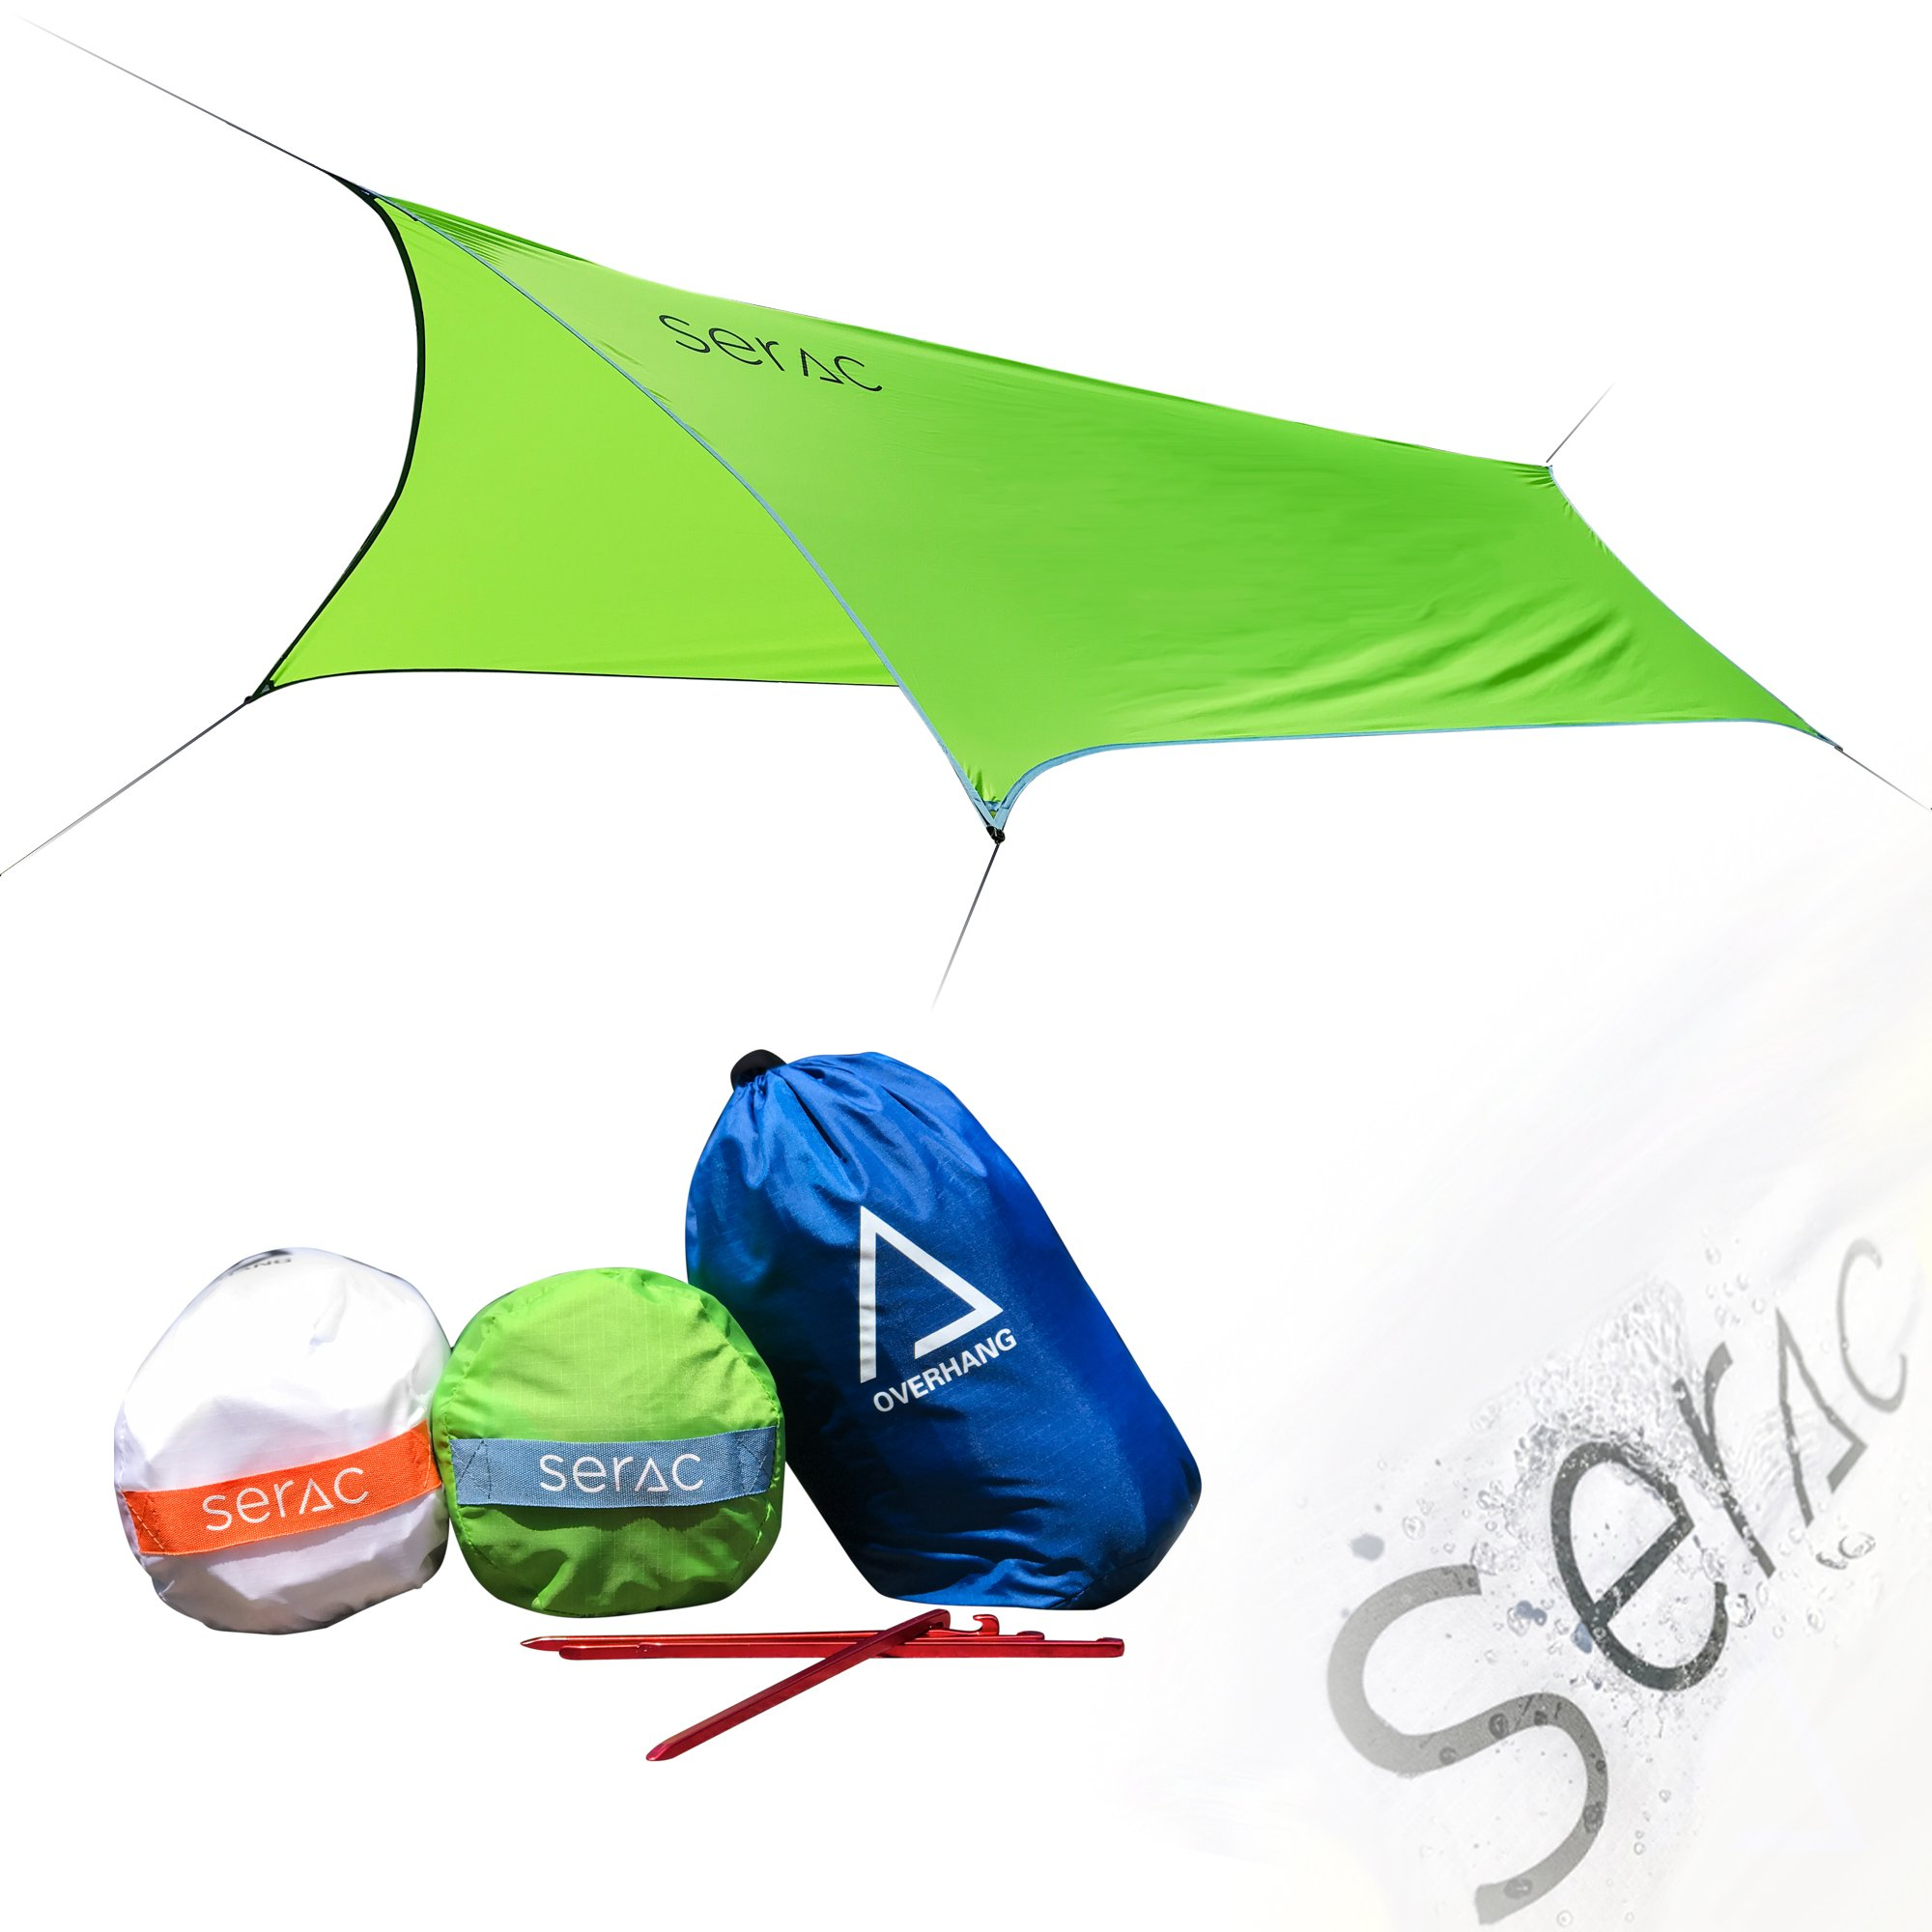 Serac [#1 Hammock and Tent Tarp] Ultralight Hammock Rain Fly and Shelter Perfect for Waterproof Camping, Lightweight Backpacking and Portable for Travel by Serac